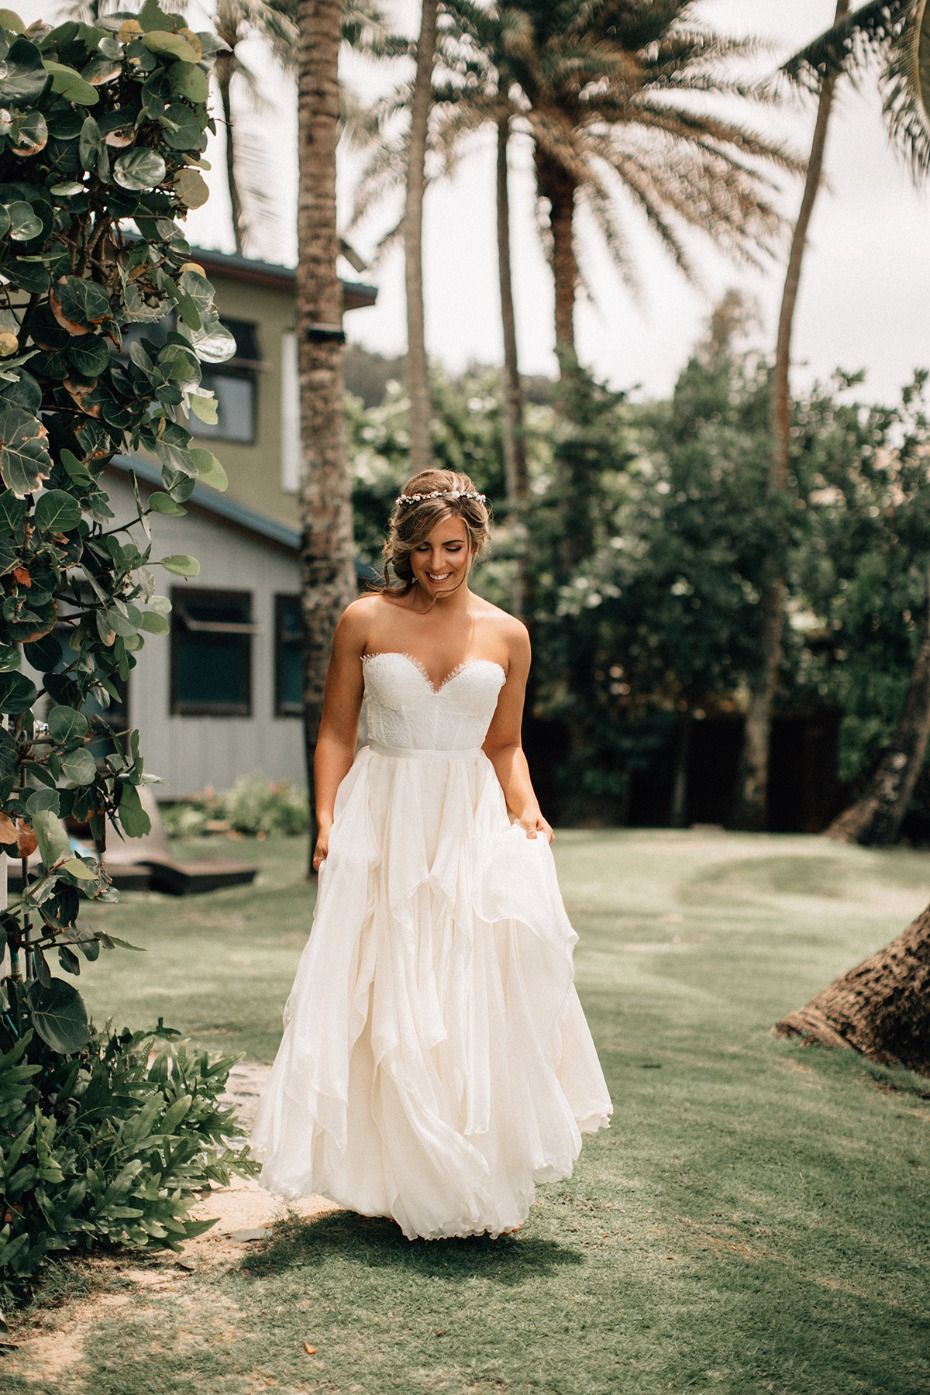 Bride in her sweetheart strapless wedding dress